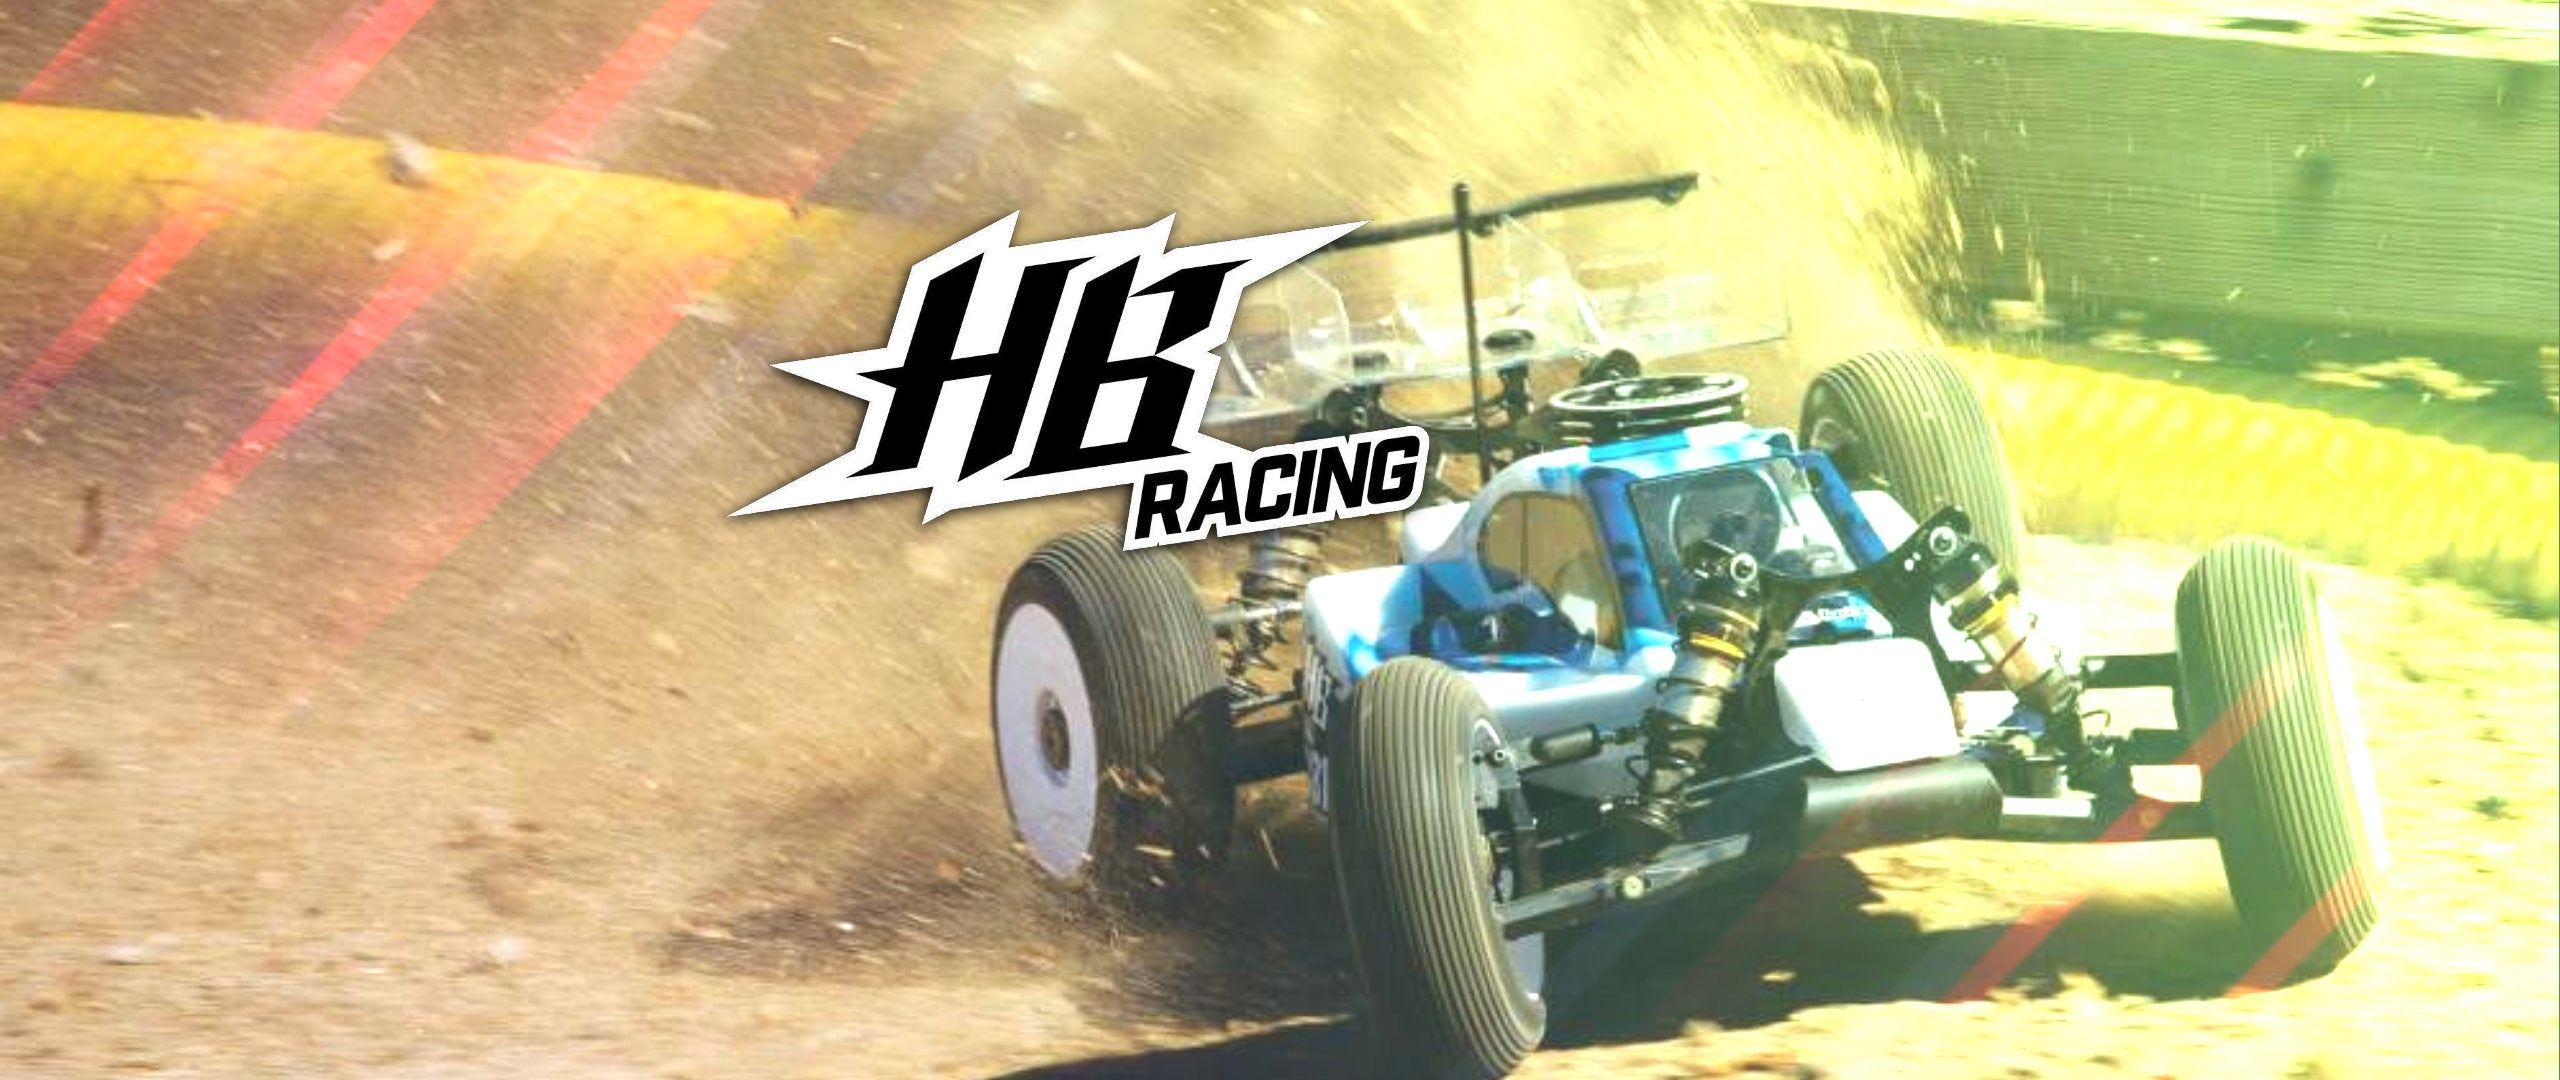 Hot Bodies Racing sold at Speedy RC